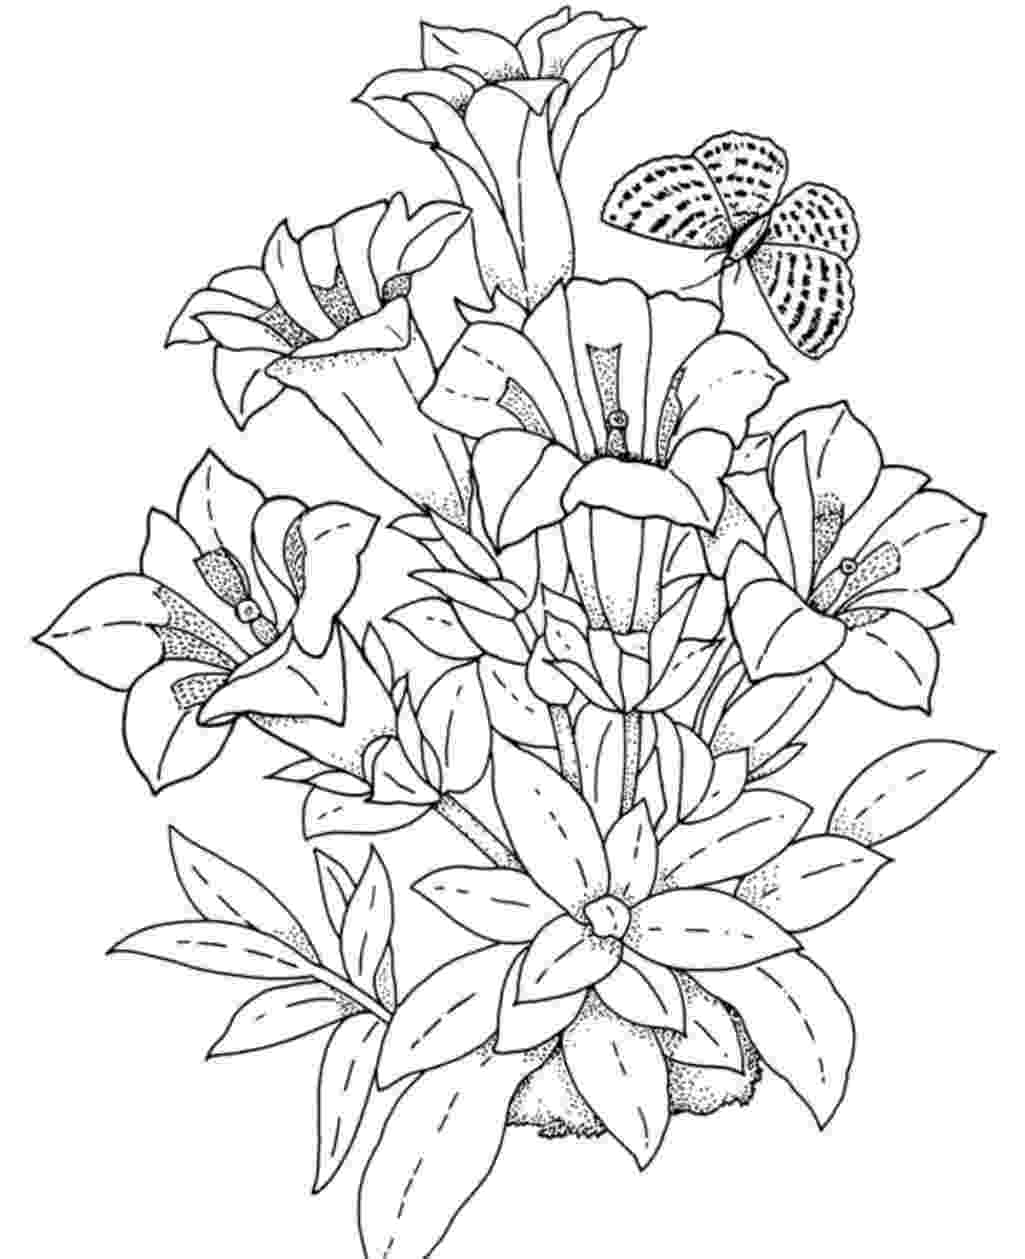 coloring page of flower detailed flower coloring pages to download and print for free page of coloring flower